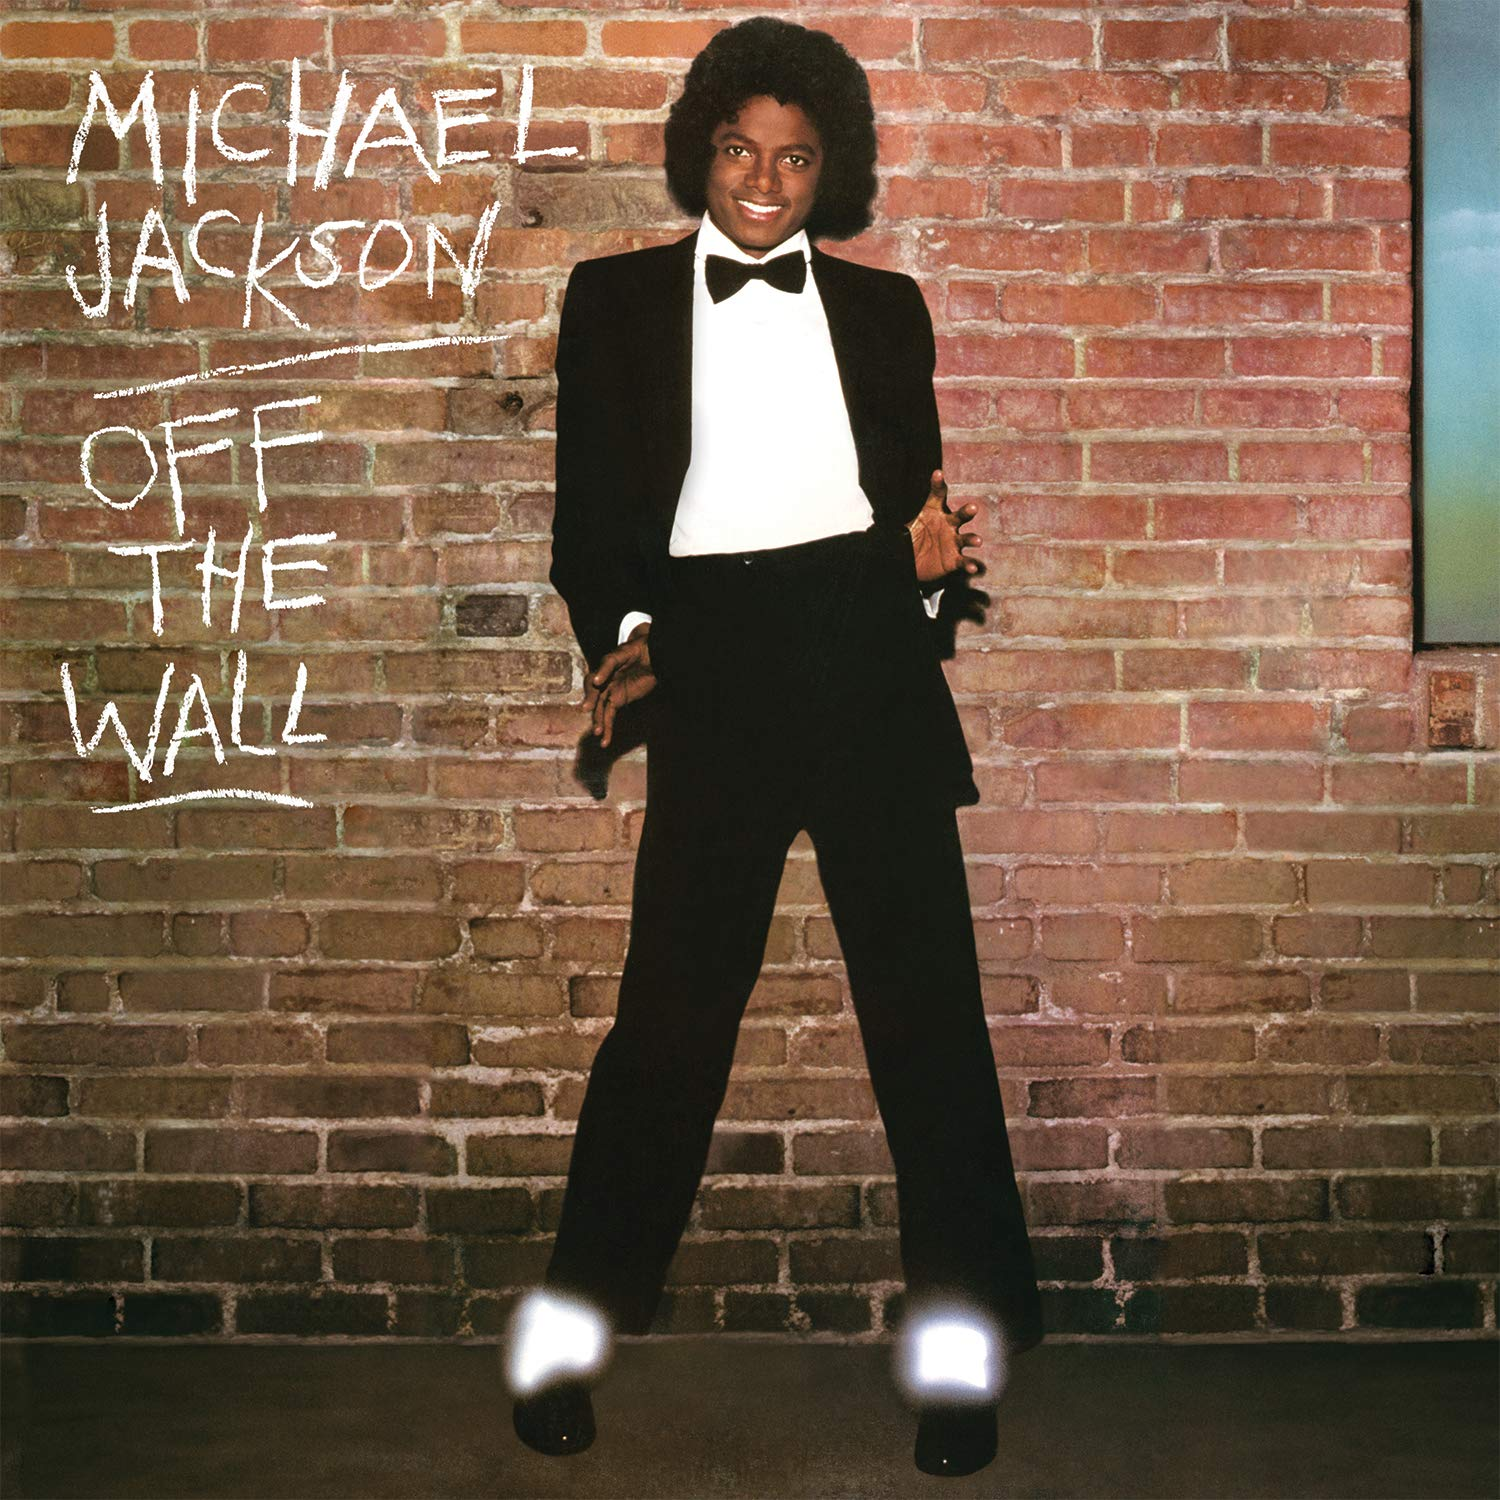 Michael Jackson - Off The Wall (CD/DVD) - Amazon.com Music